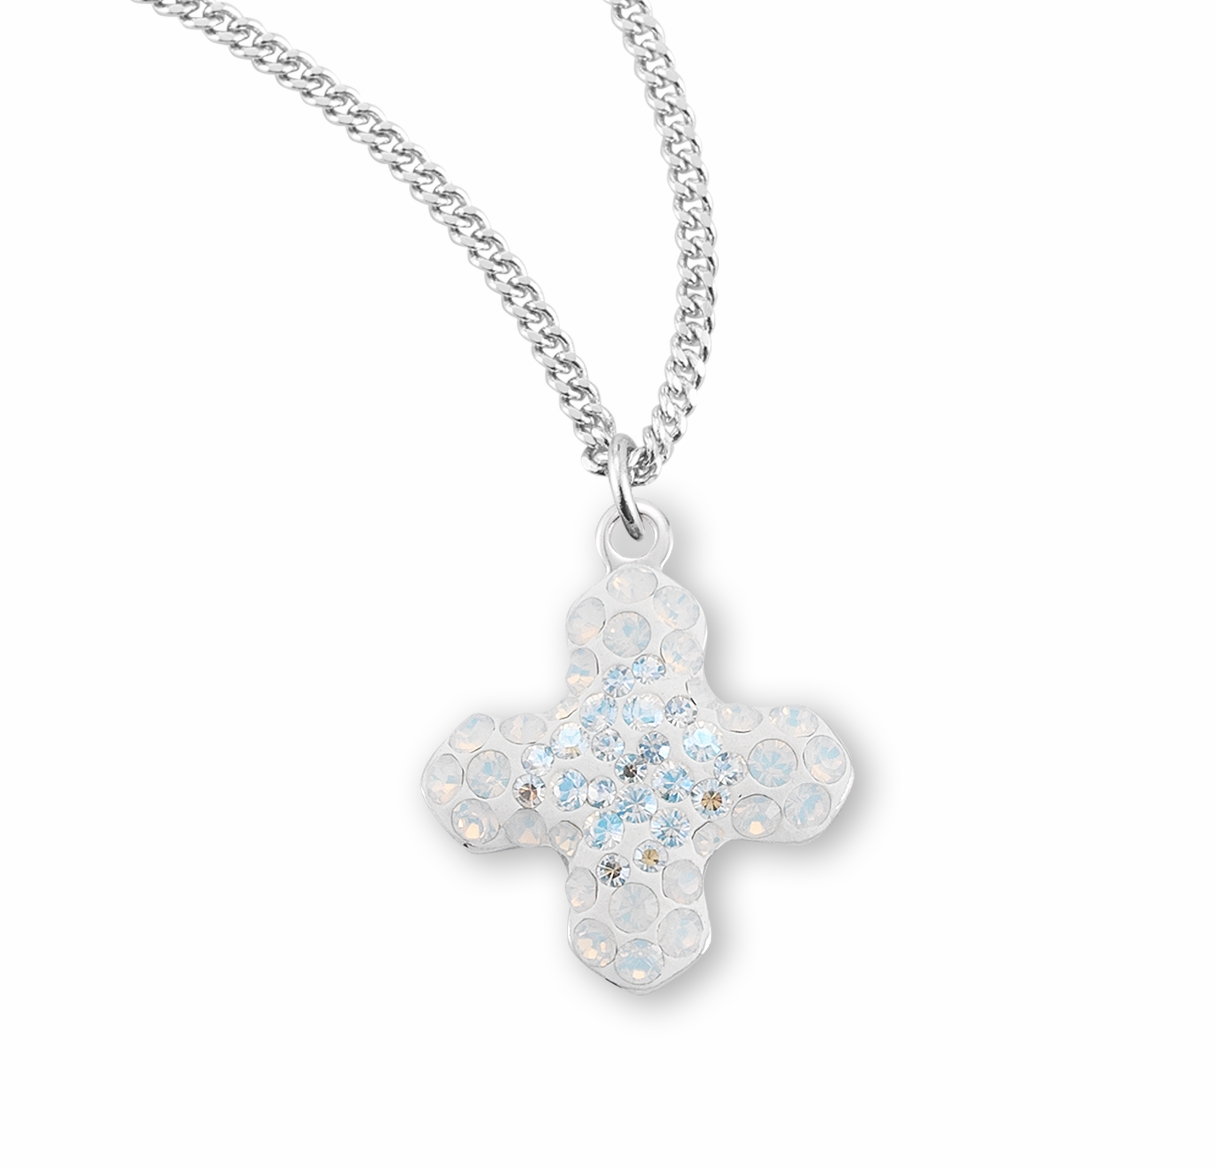 HMH Religious Moonlight and White Opal Greek Cross Necklace